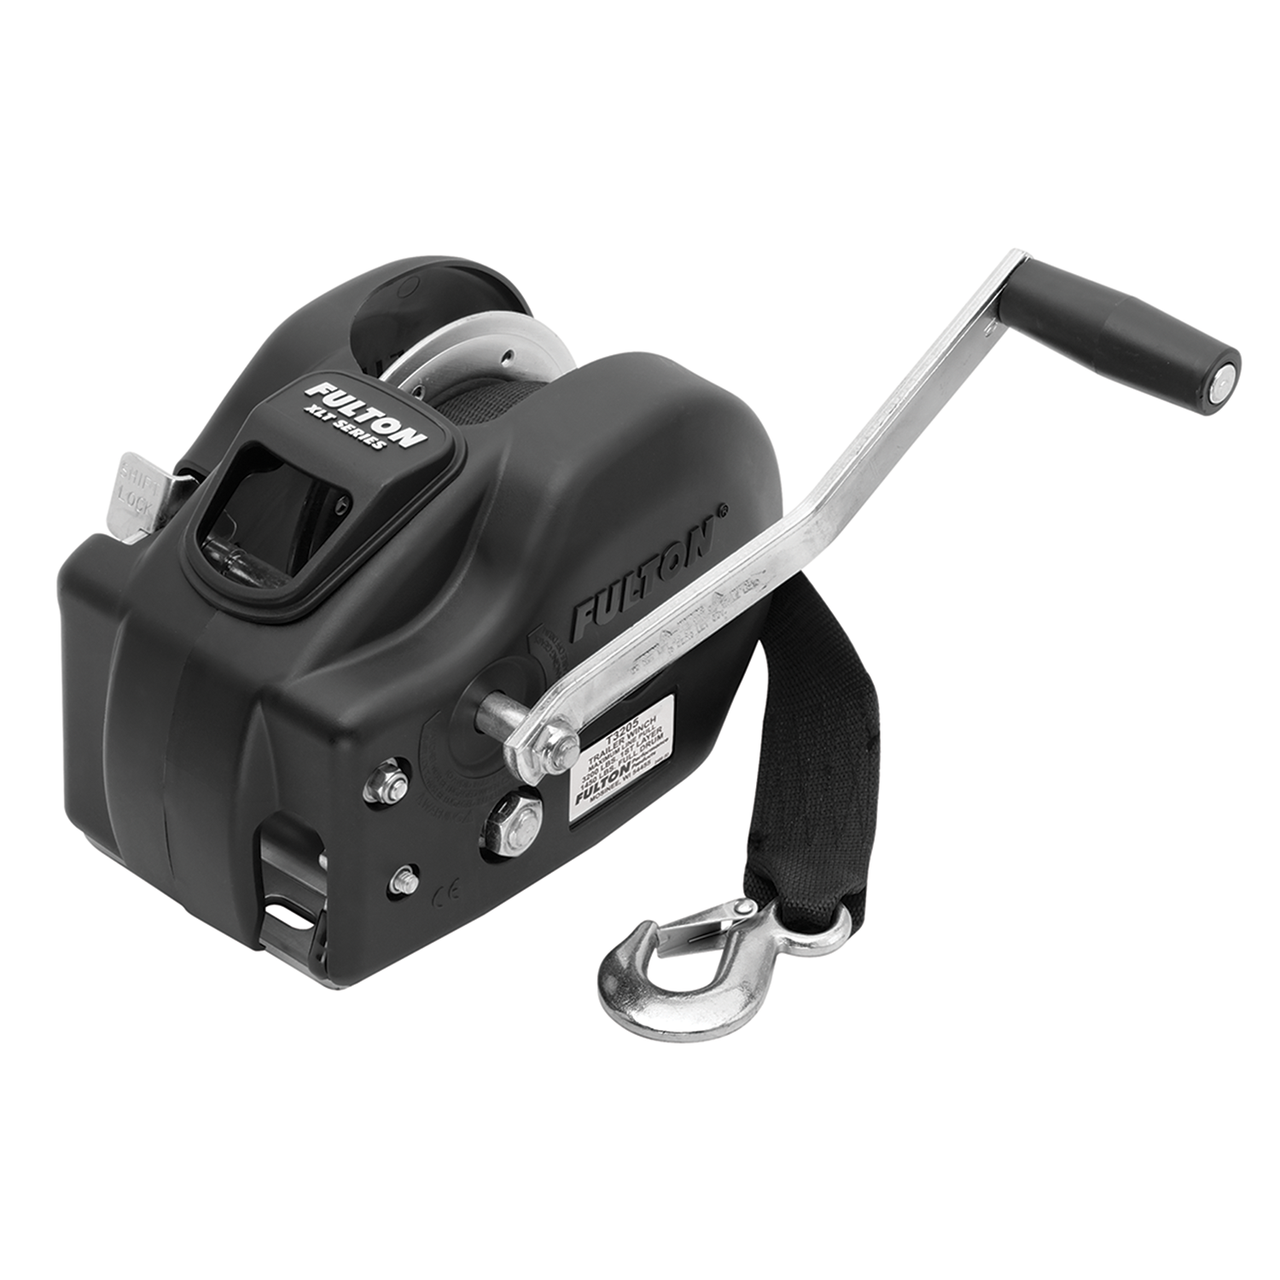 142425 --- Fulton Two Speed Trailer Winch - 3,200 lb Capacity